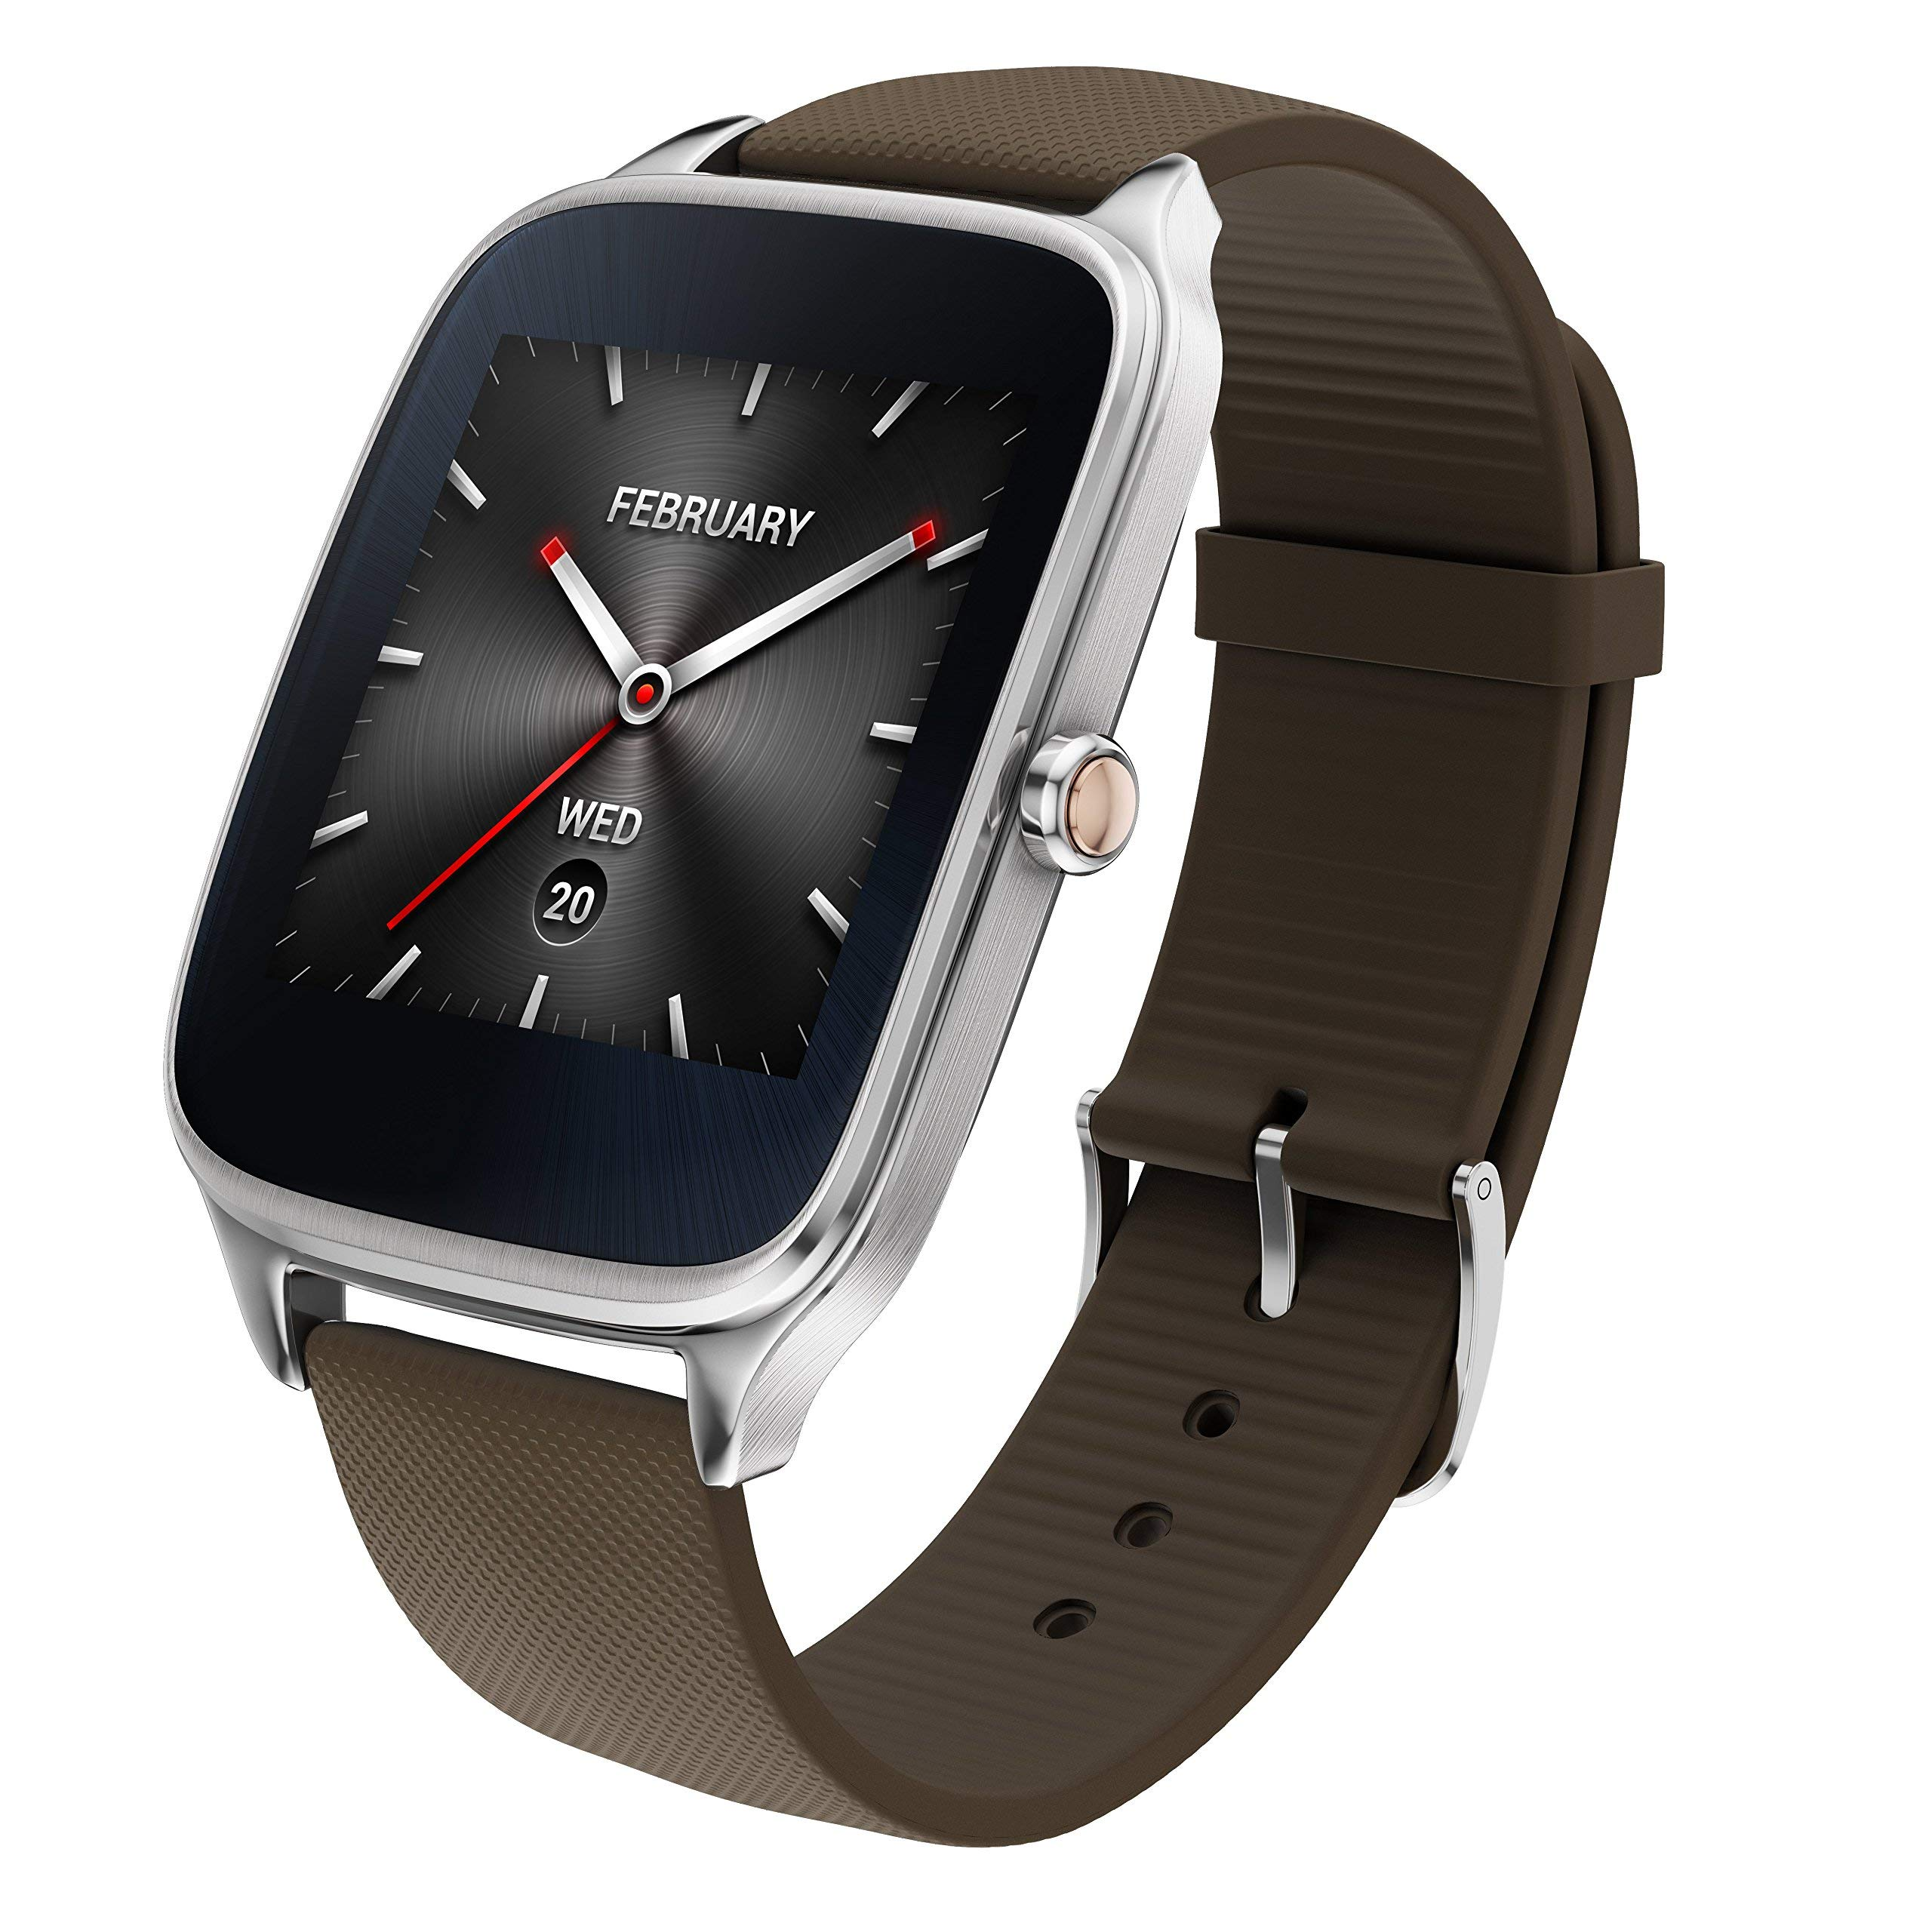 (Renewed) ASUS ZenWatch 2 Android Wear Smartwatch - 1.63in, Silver case with Brown rubber band (Discontinued by Manufacturer) (B07JW5YKWL) Amazon Price History, Amazon Price Tracker